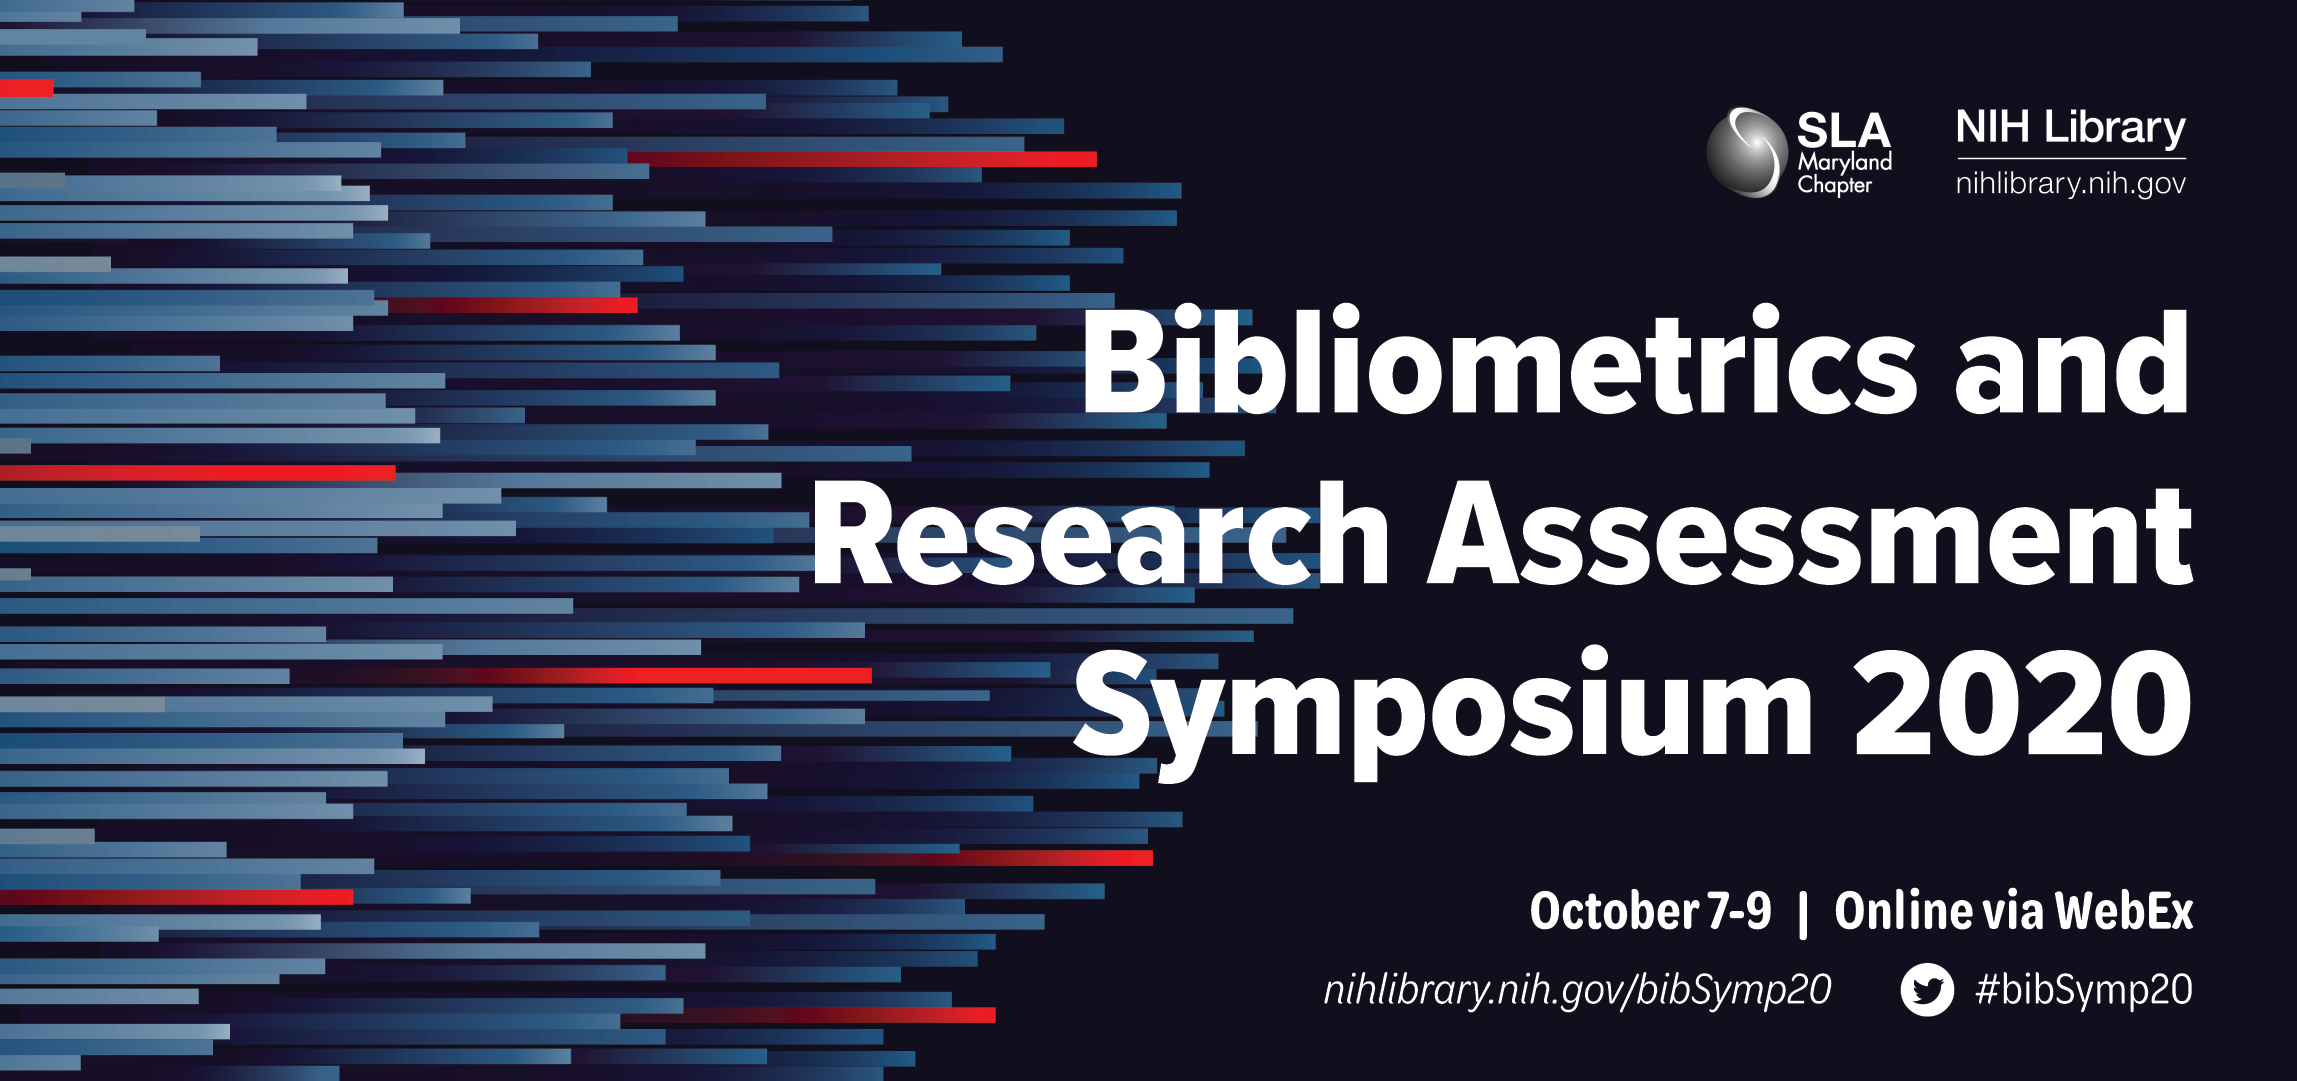 Banner for the 2020 bibliometrics and research assessment symposium